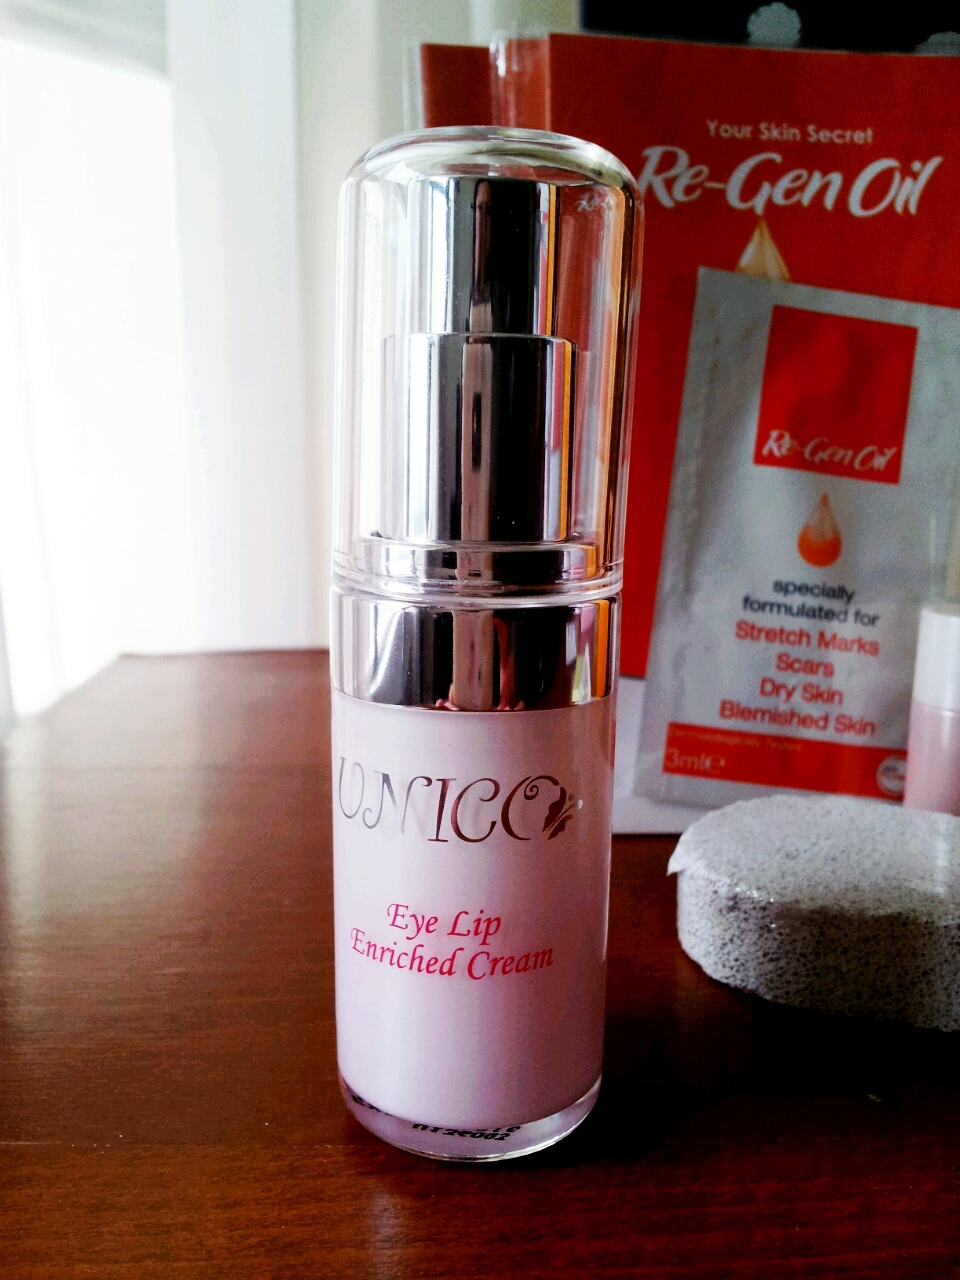 UNICO Eye Lip Enriched Cream